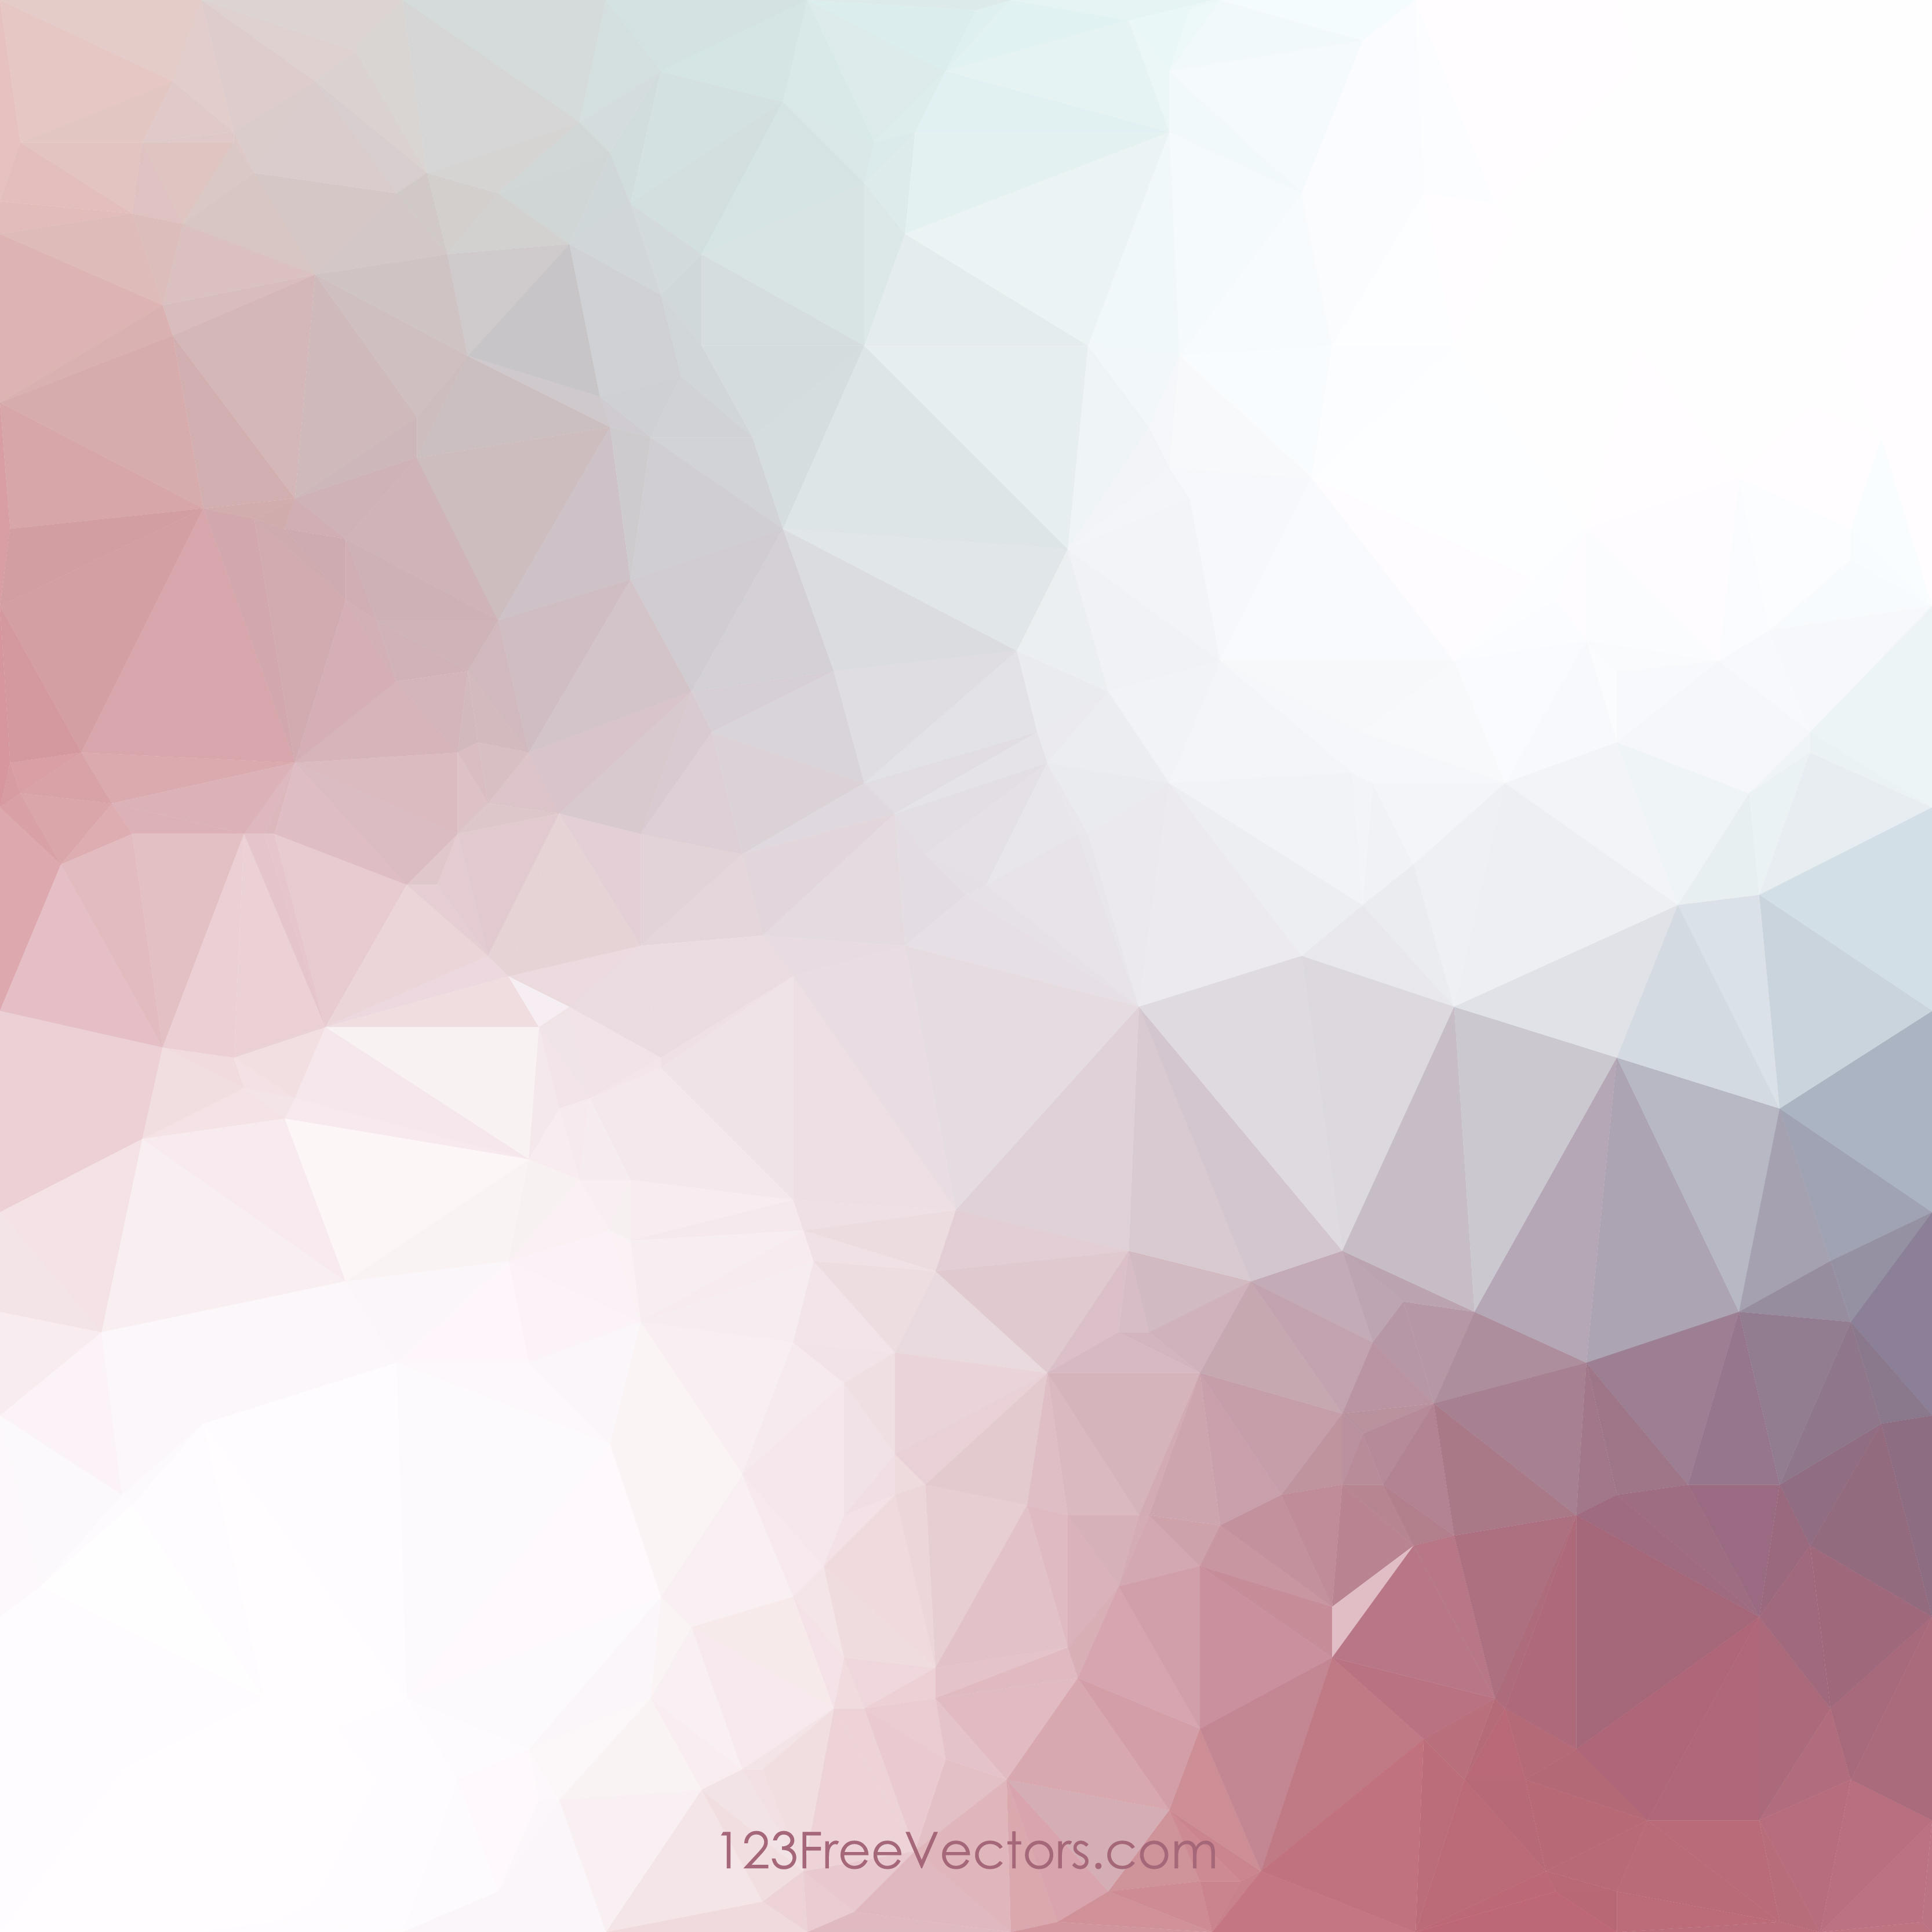 Polygonal background clipart banner royalty free library Light Color Abstract Polygonal Background Clip Art banner royalty free library